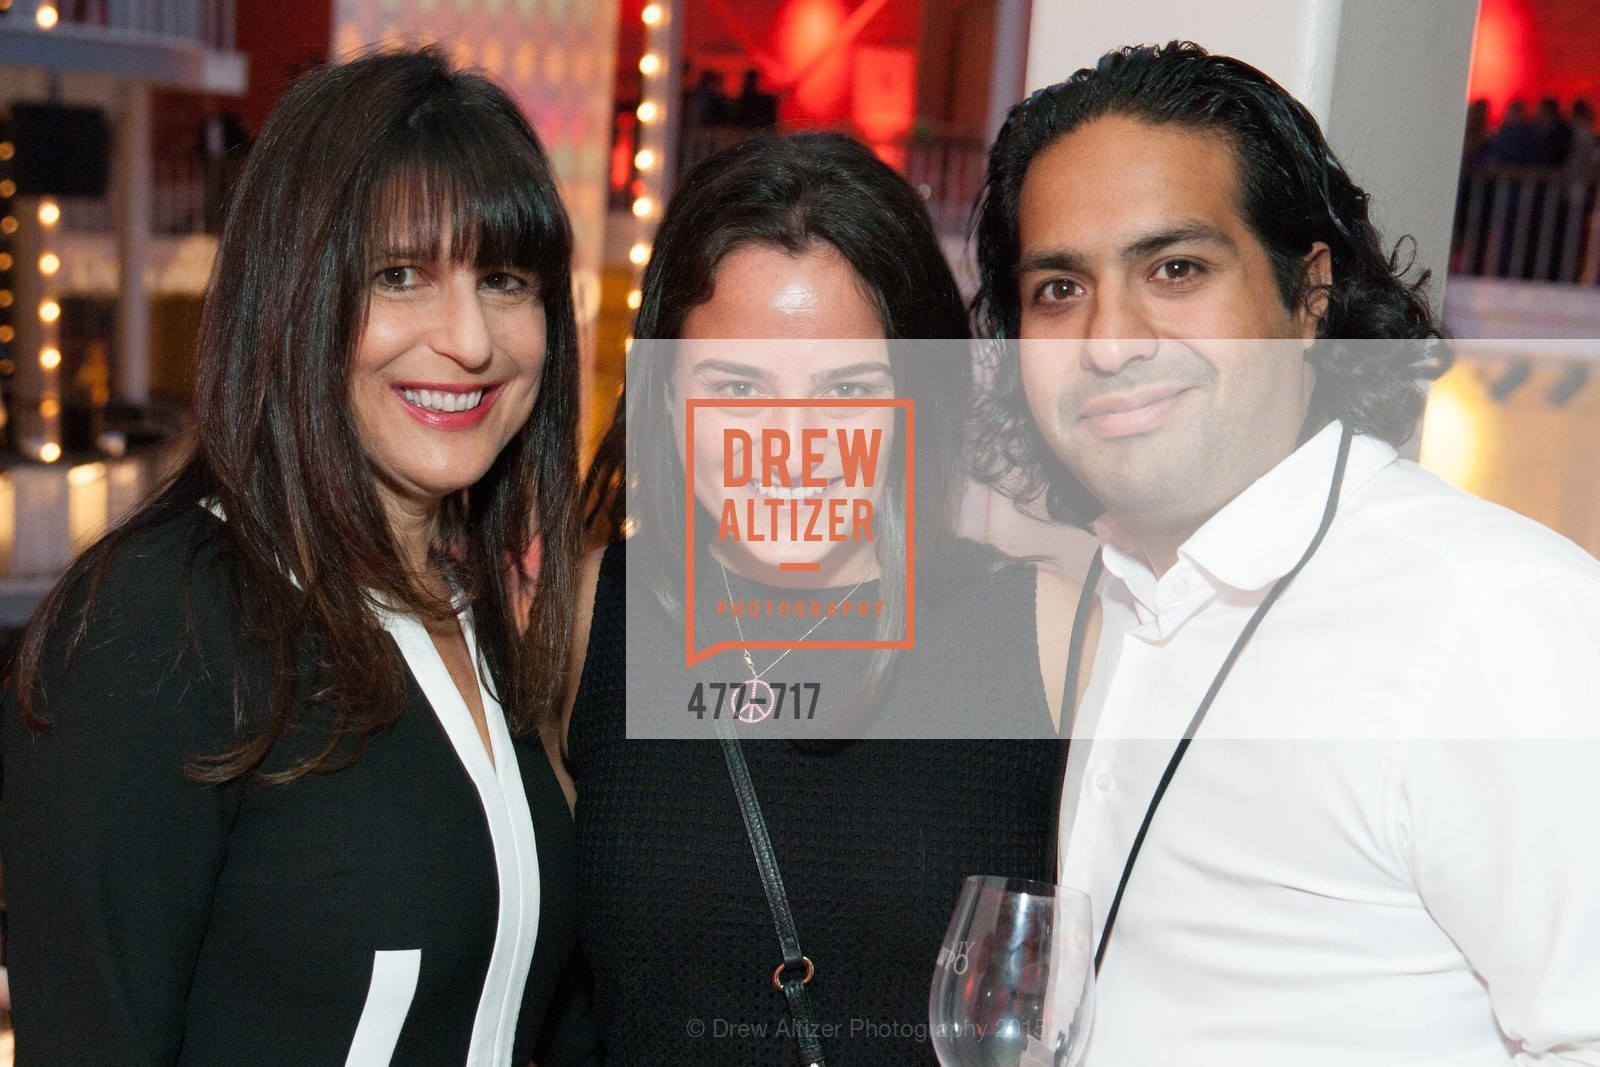 Laura Cohn, Marissa Siegal, Moez Kassam, YPO Wine Festival, US, May 11th, 2015,Drew Altizer, Drew Altizer Photography, full-service agency, private events, San Francisco photographer, photographer california